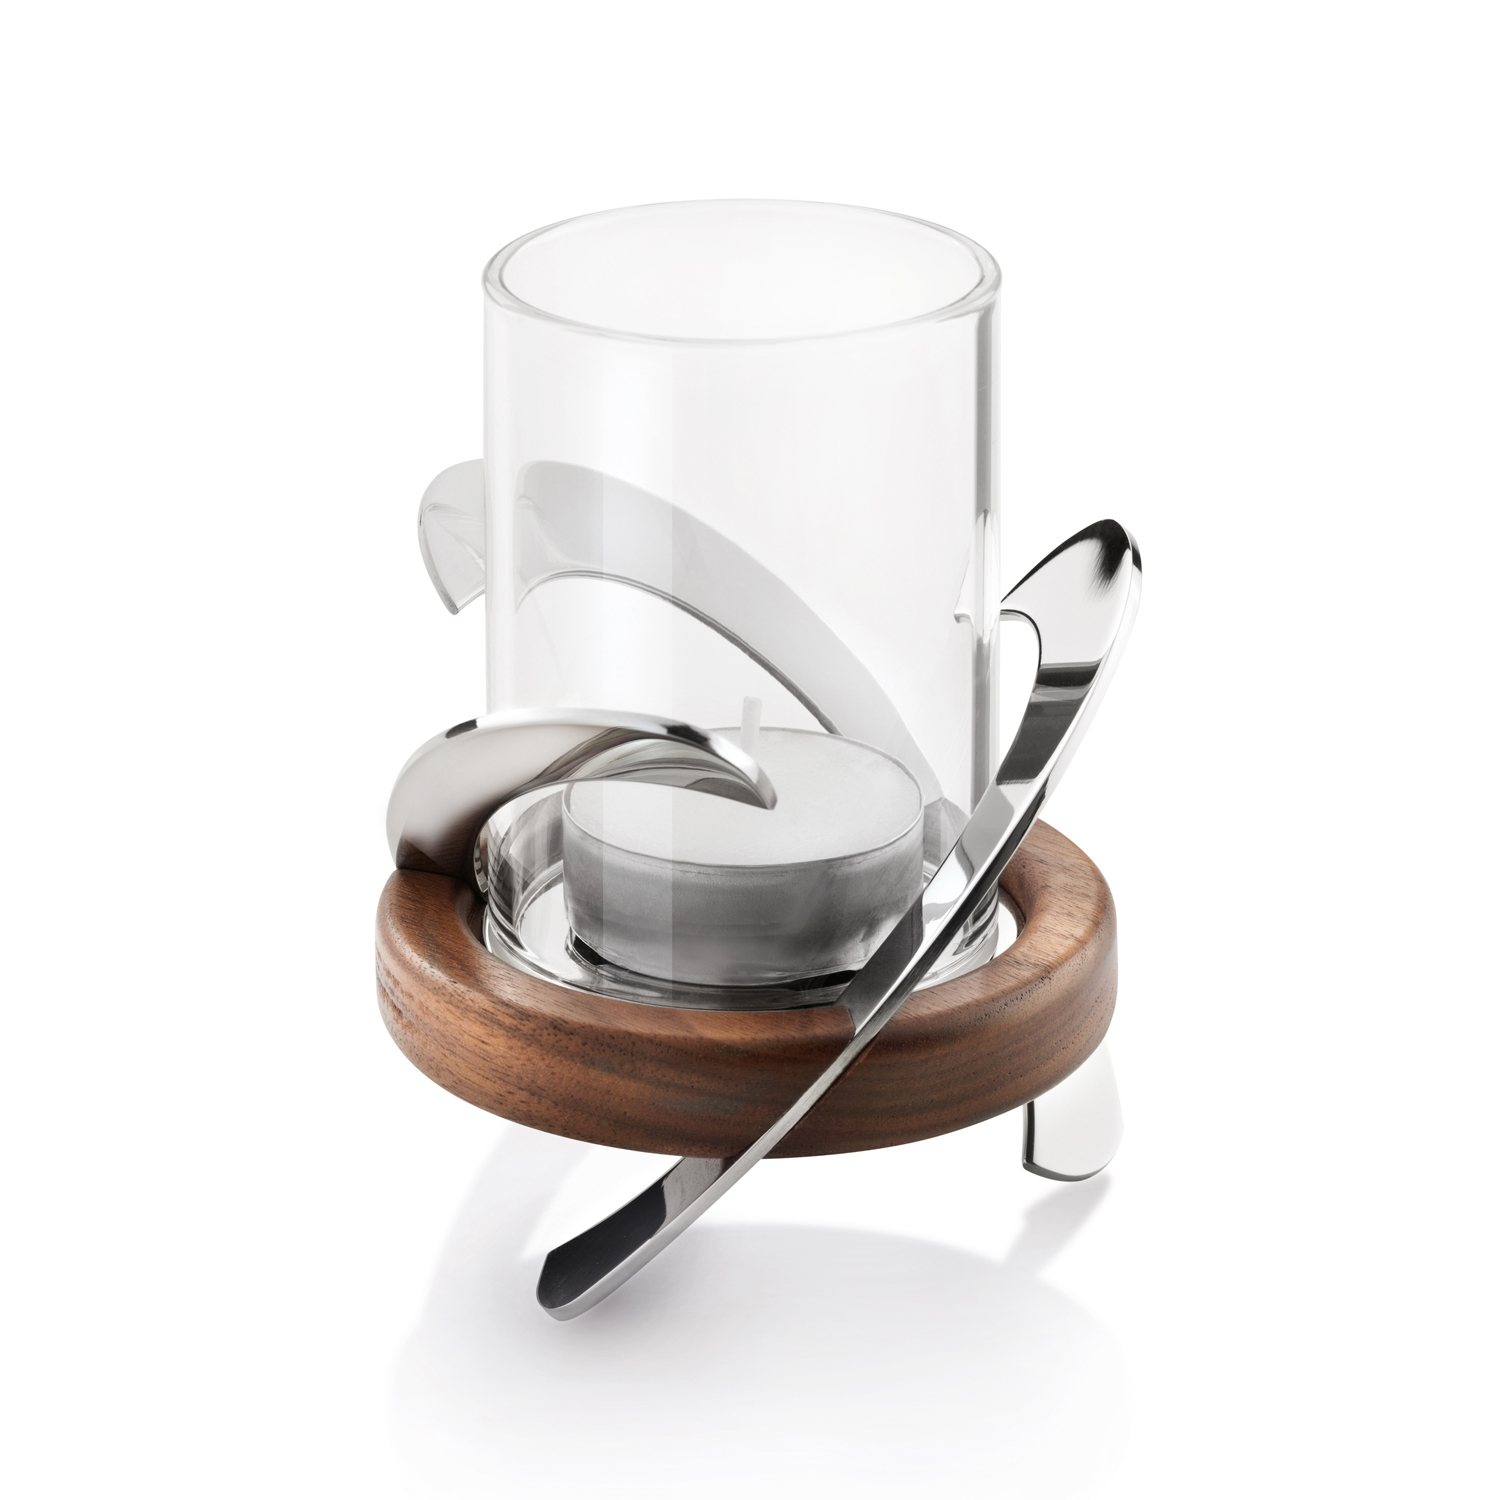 Image of Robert Welch Helix Tealight Holder, Stainless Steel